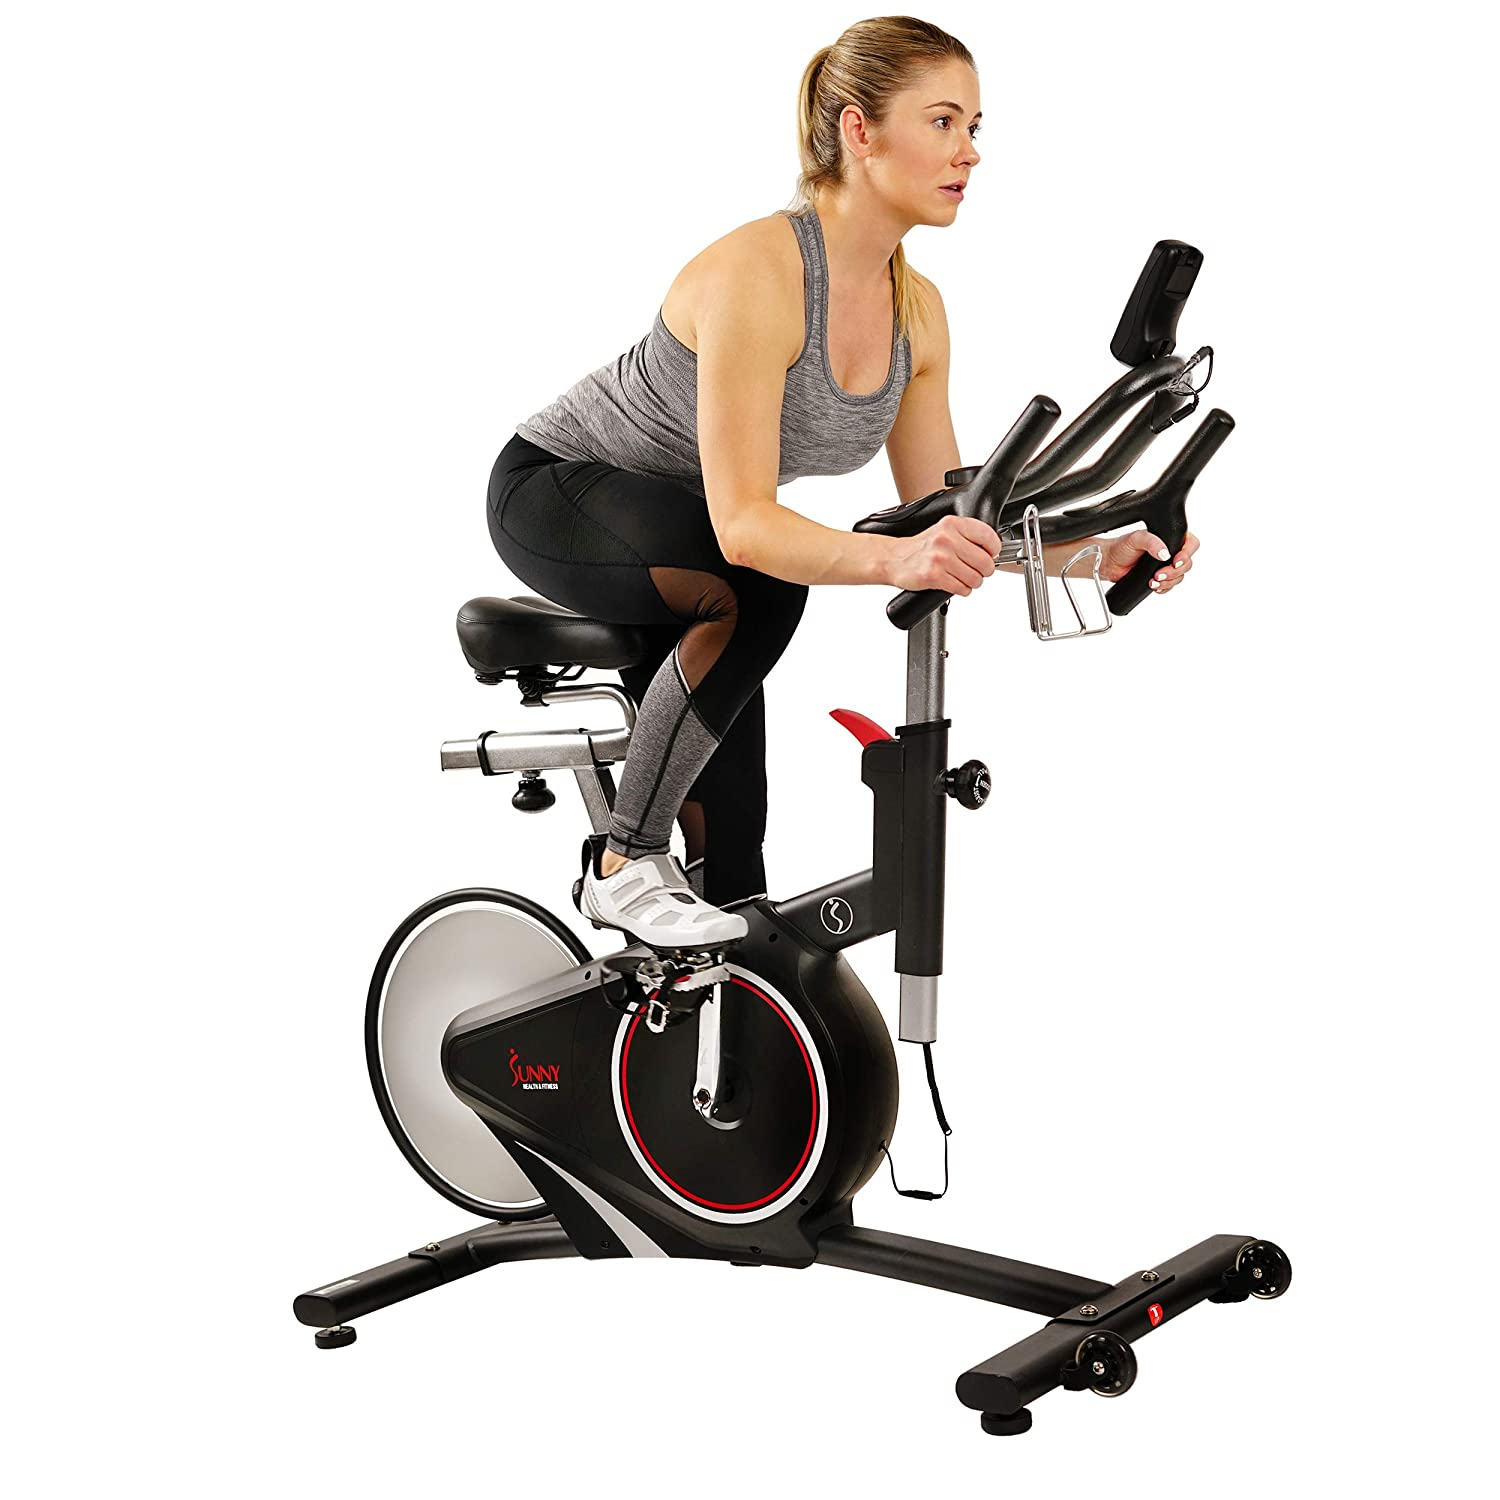 Sunny Health Fitness Magnetic Belt Rear Drive Indoor Cycling Bike, High Weight Capacity with RPM Cadence Sensor Pulse Rate Monitor – SF-B1709